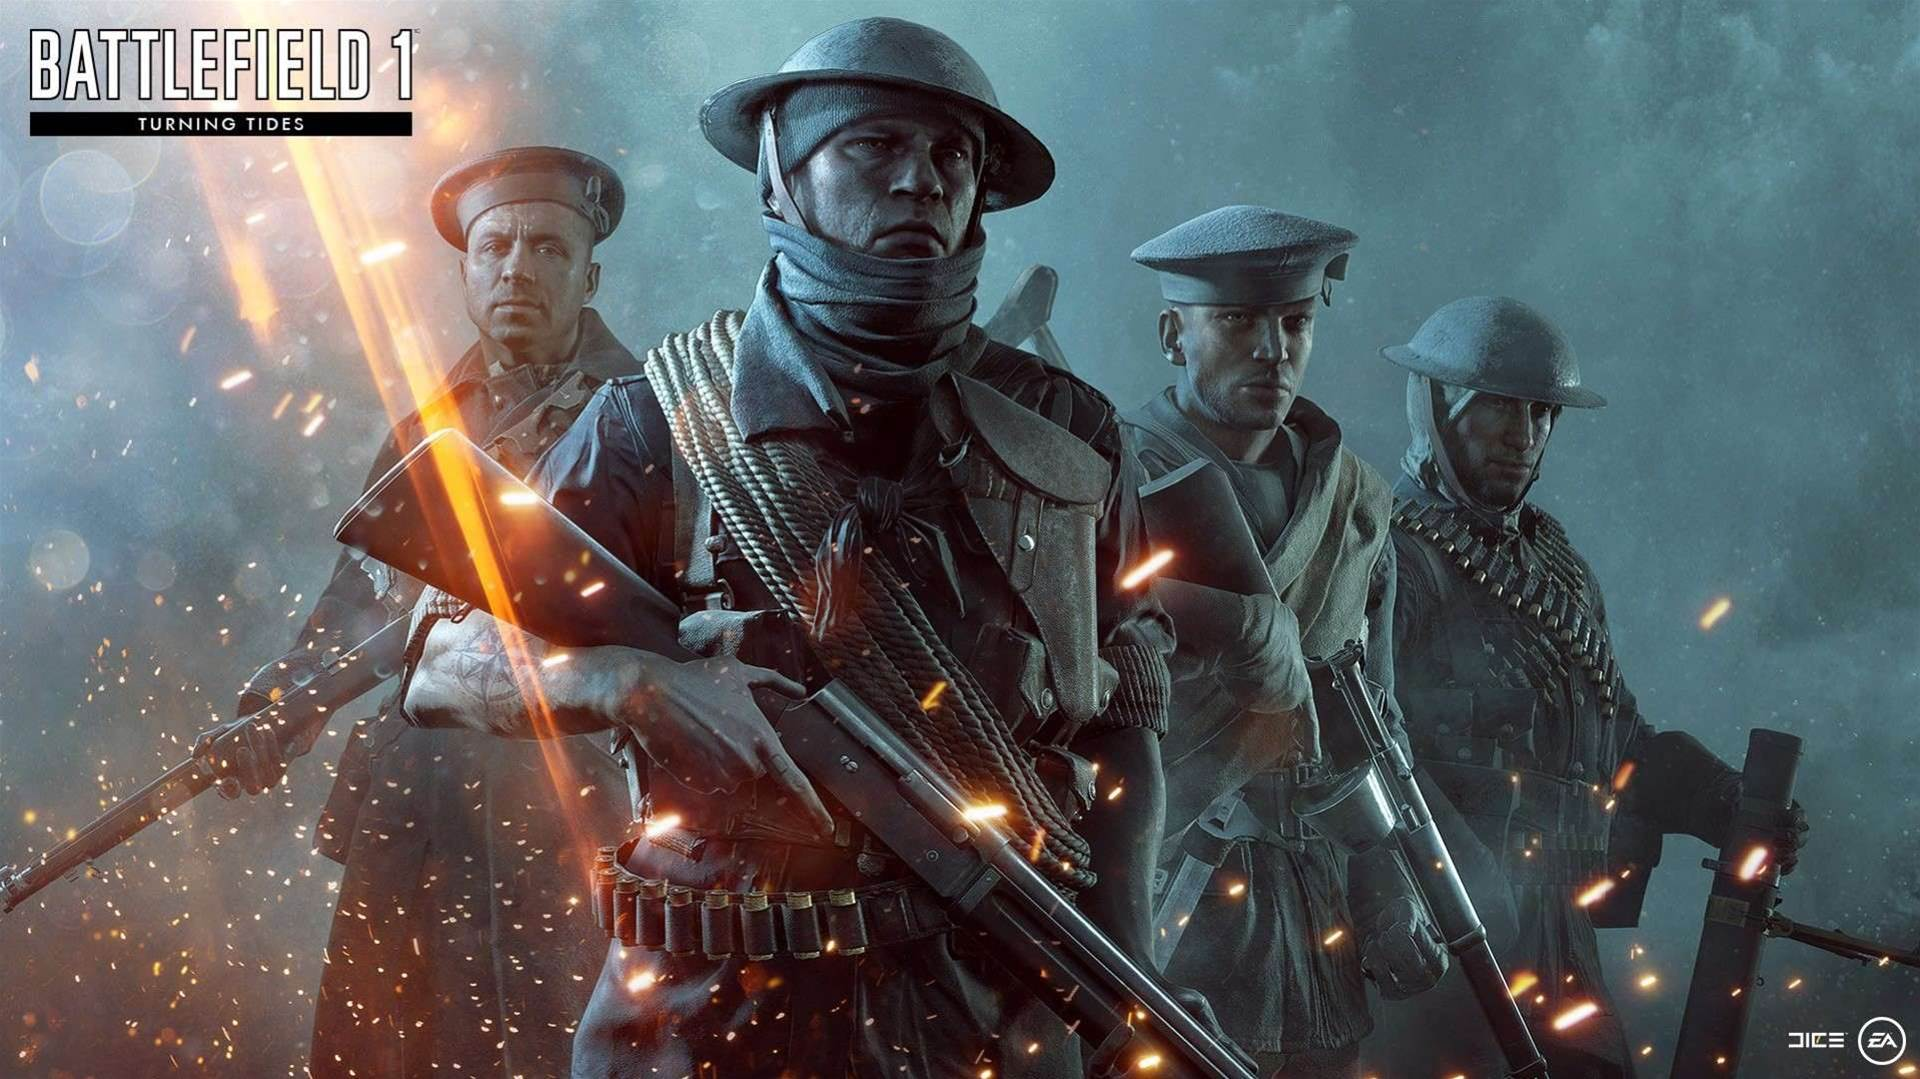 The tides they are a-turnin' in these Battlefield 1 Turning Tides screens